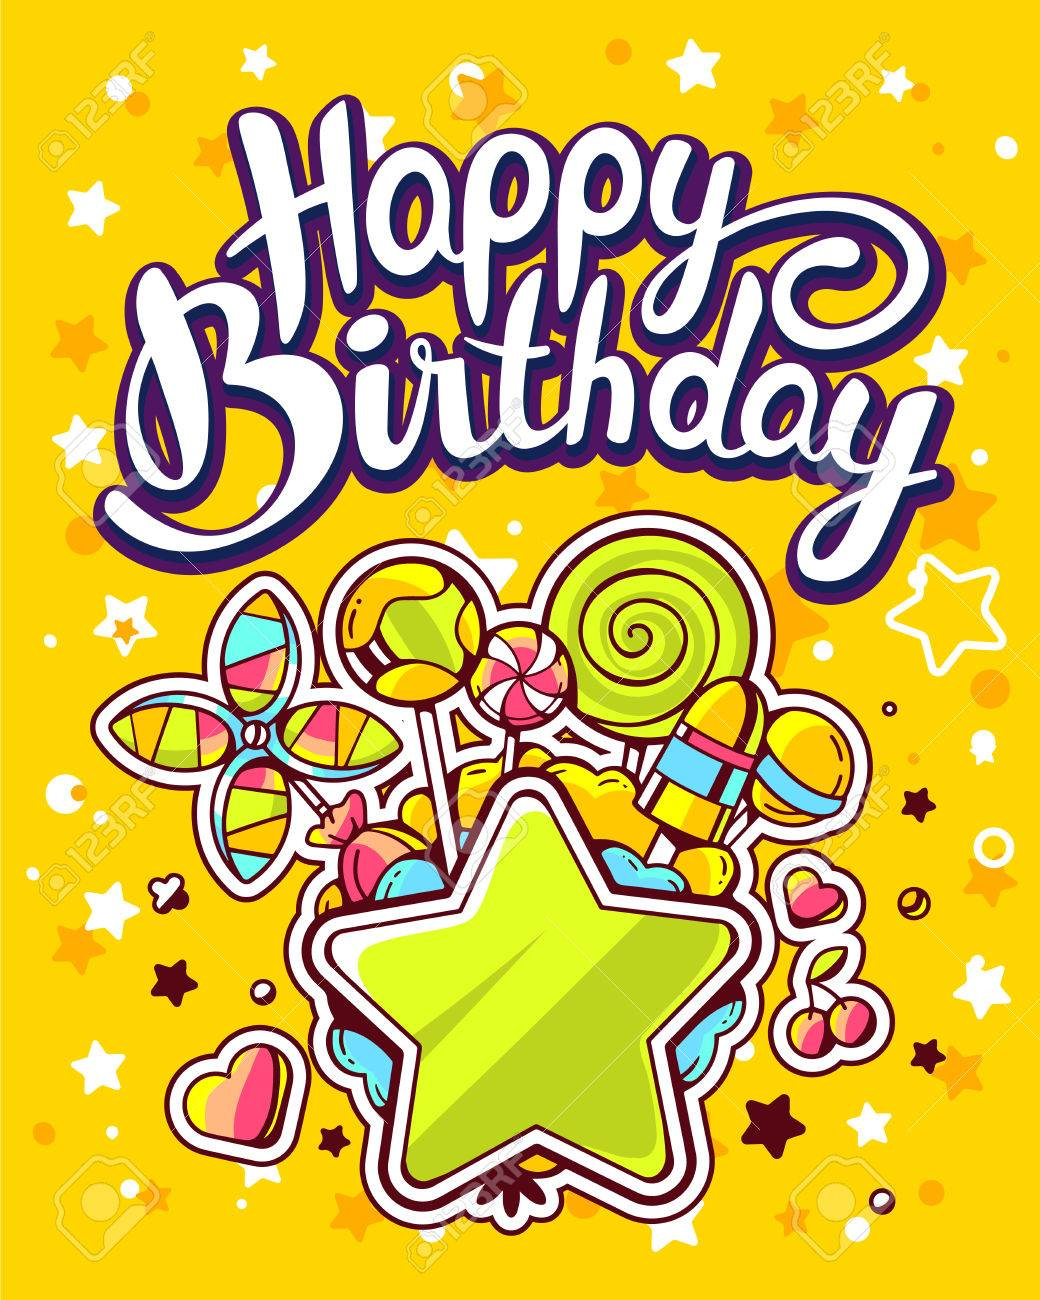 creative happy birthday posters ; 61959894-vector-creative-colorful-illustration-of-green-star-pile-of-sweets-and-text-happy-birthday-on-yellow